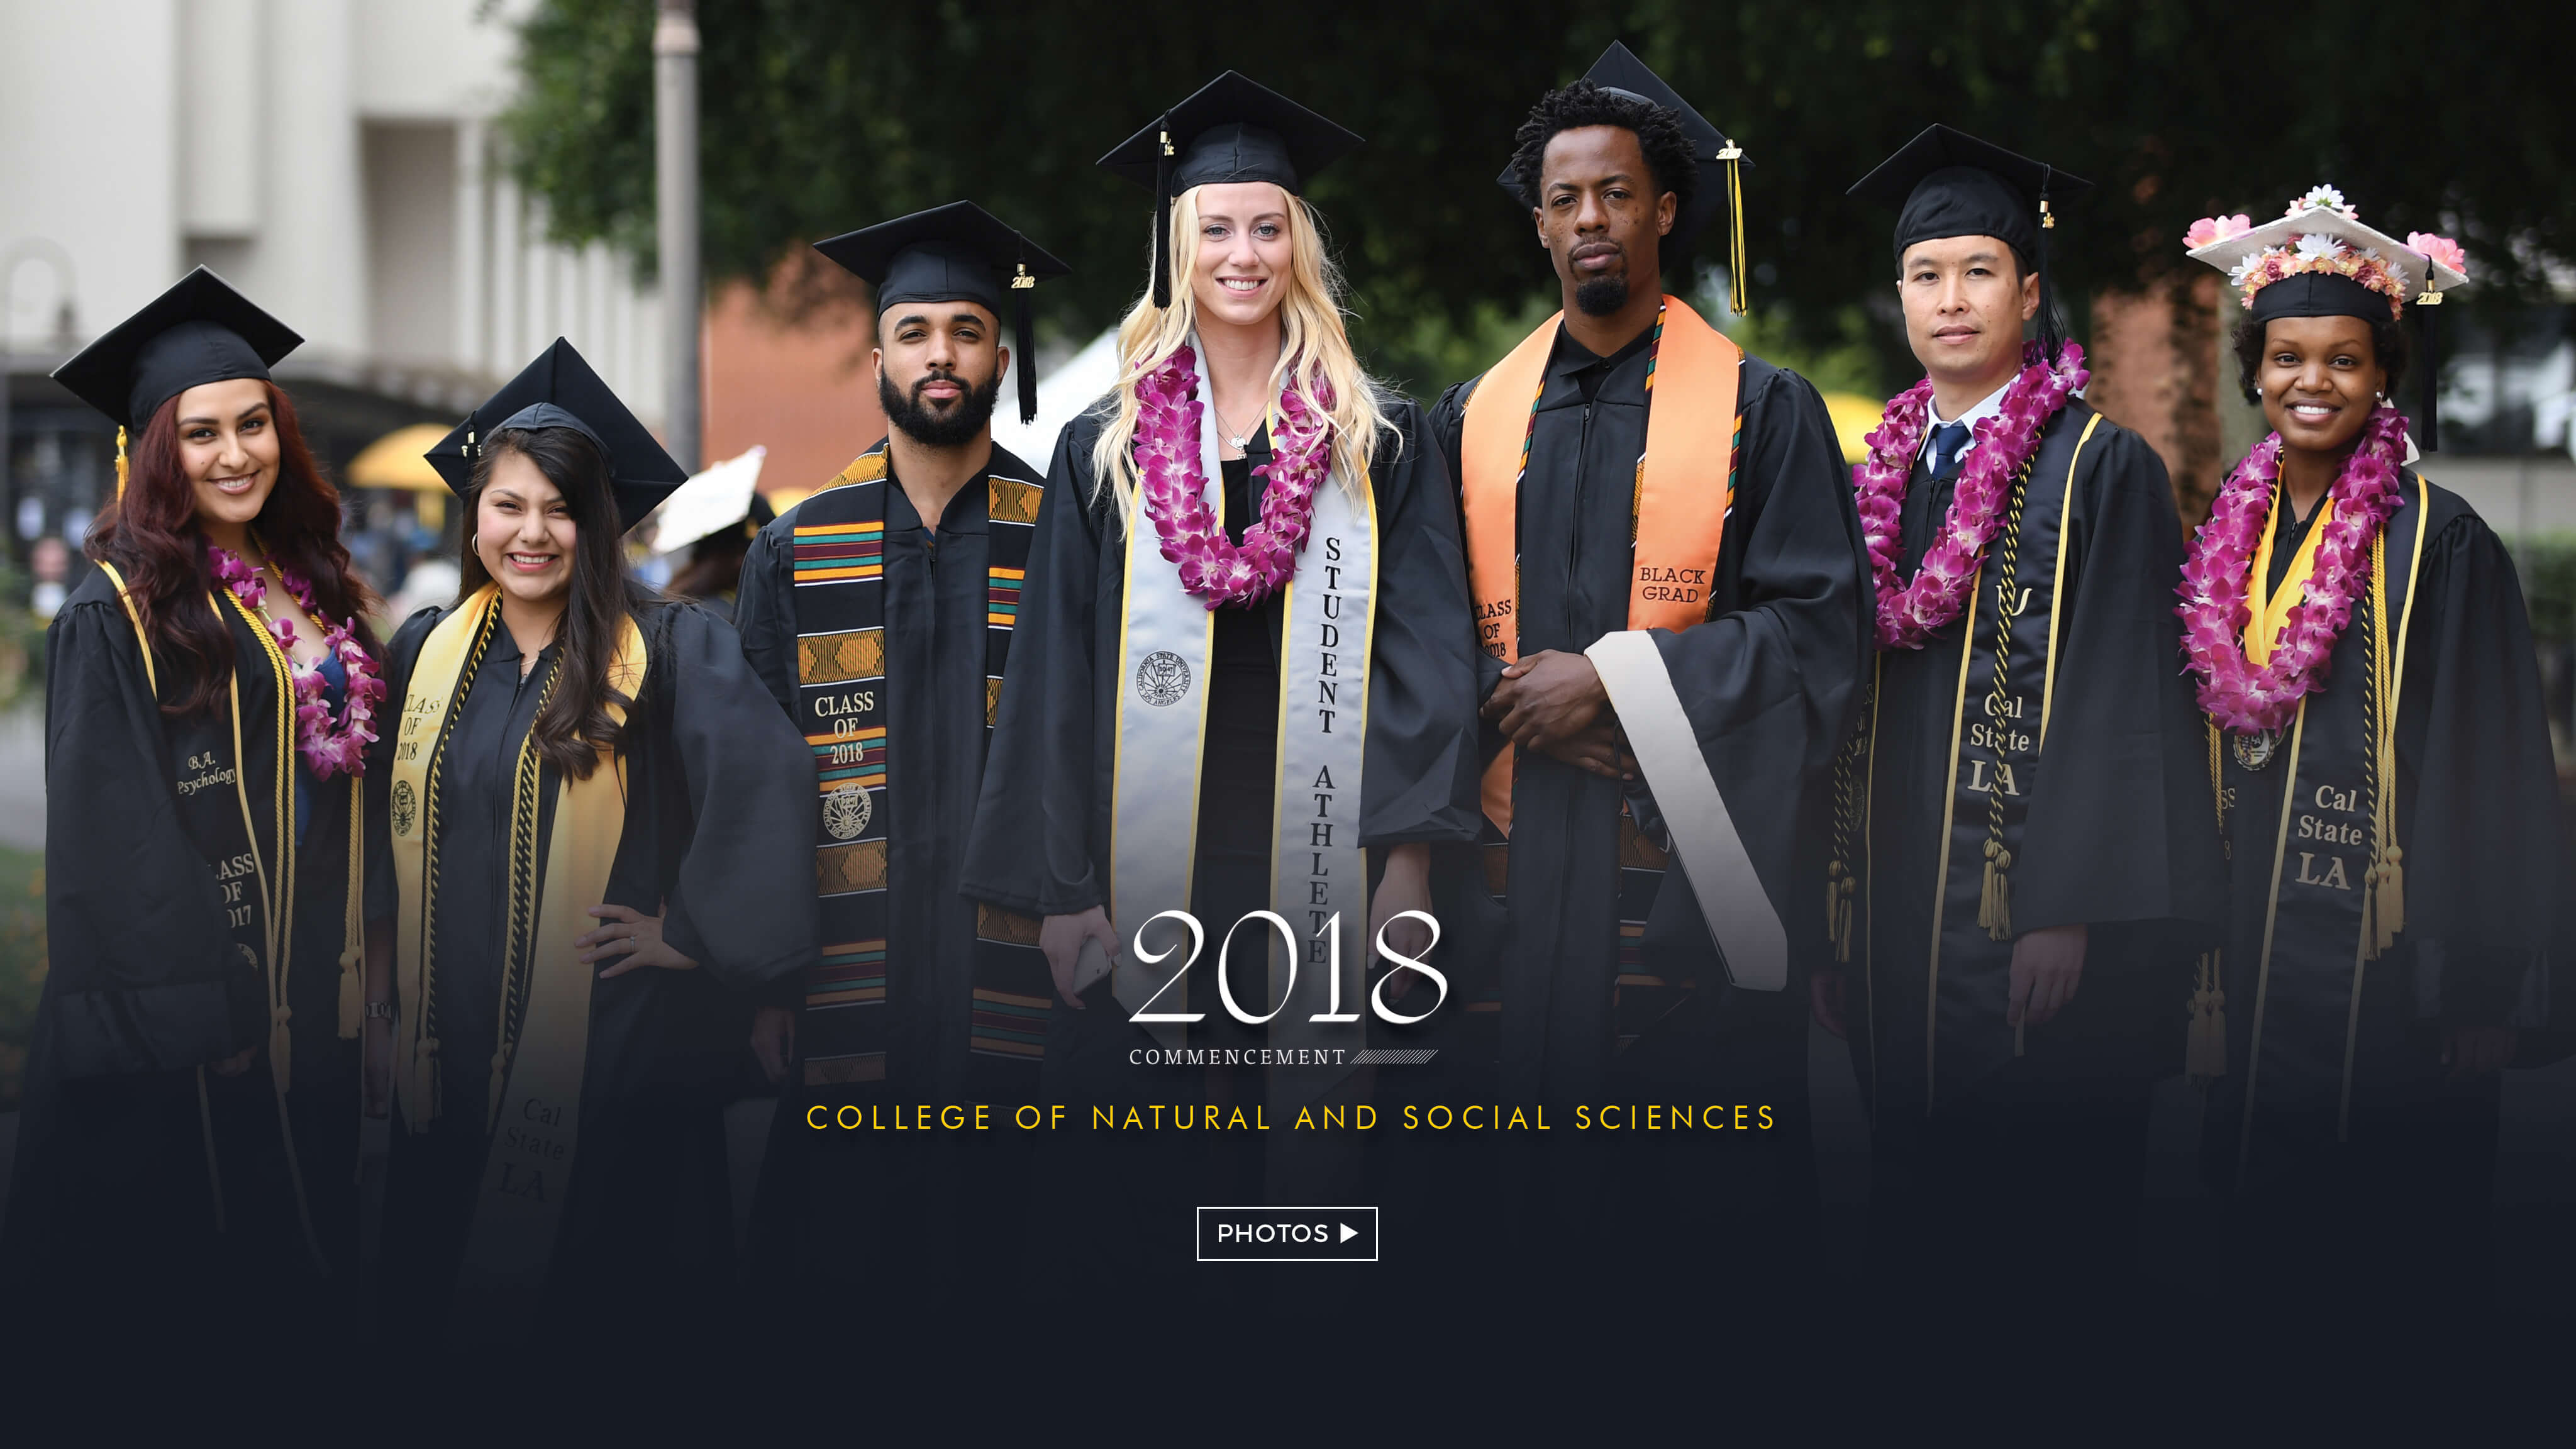 College of Natural and Social Sciences photo album